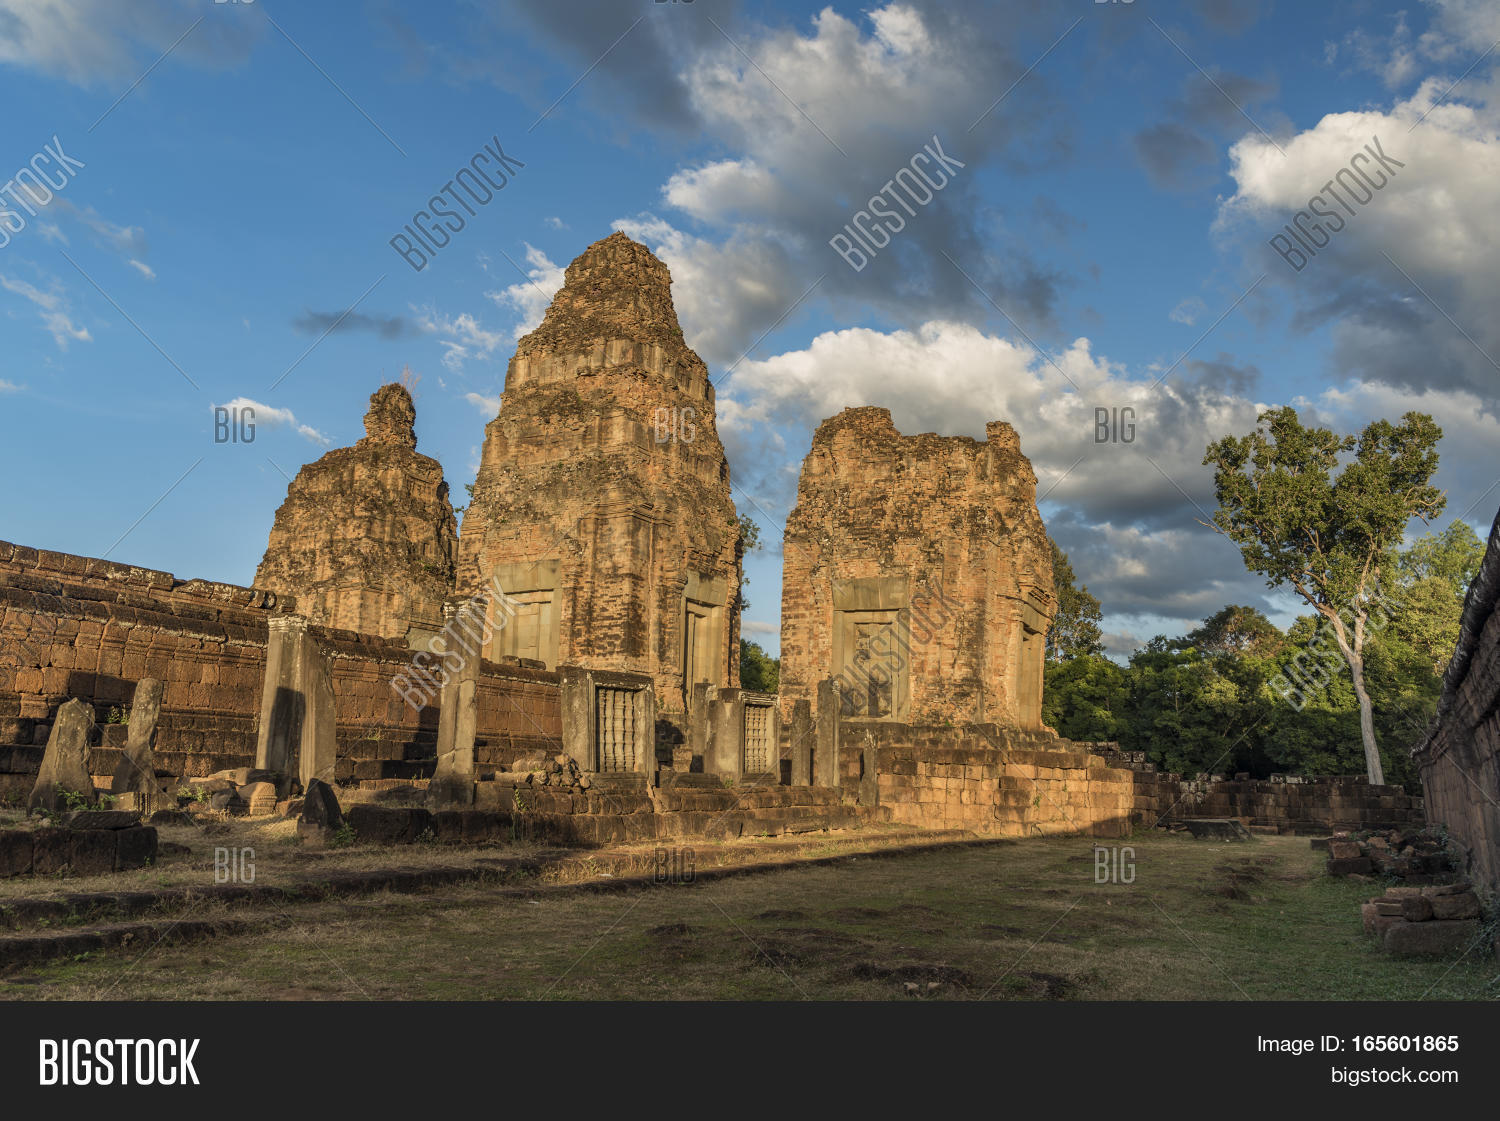 Thum,ancient,angkor,architecture,asia,asian,buddhism,buddhist,building,cambodia,cambodian,city,civilization,culture,famous,fireworks,heritage,hindu,hinduism,history,khmer,lake,market,monument,new,night,old,panorama,pyrotechnics,reap,religion,religious,ruin,siem,sky,southeast,statue,stone,street,temple,tourism,tourist,tower,town,travel,twilight,unesco,wat,year